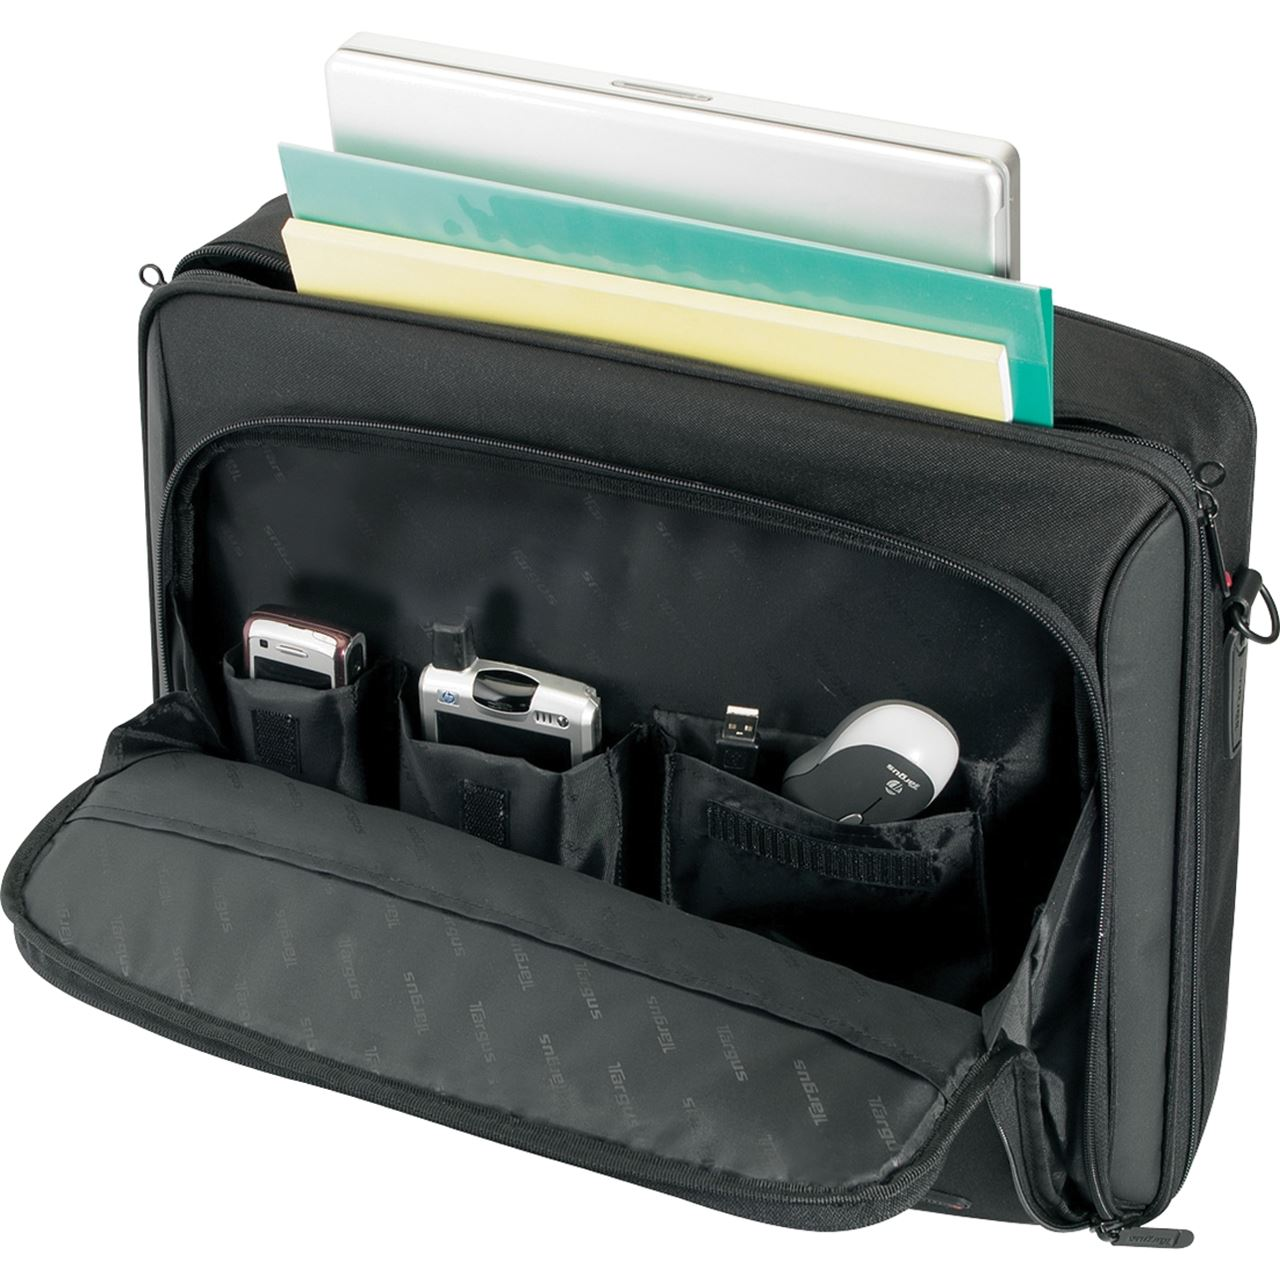 16 classic clamshell cn31us black briefcases targus for Clamshell casing